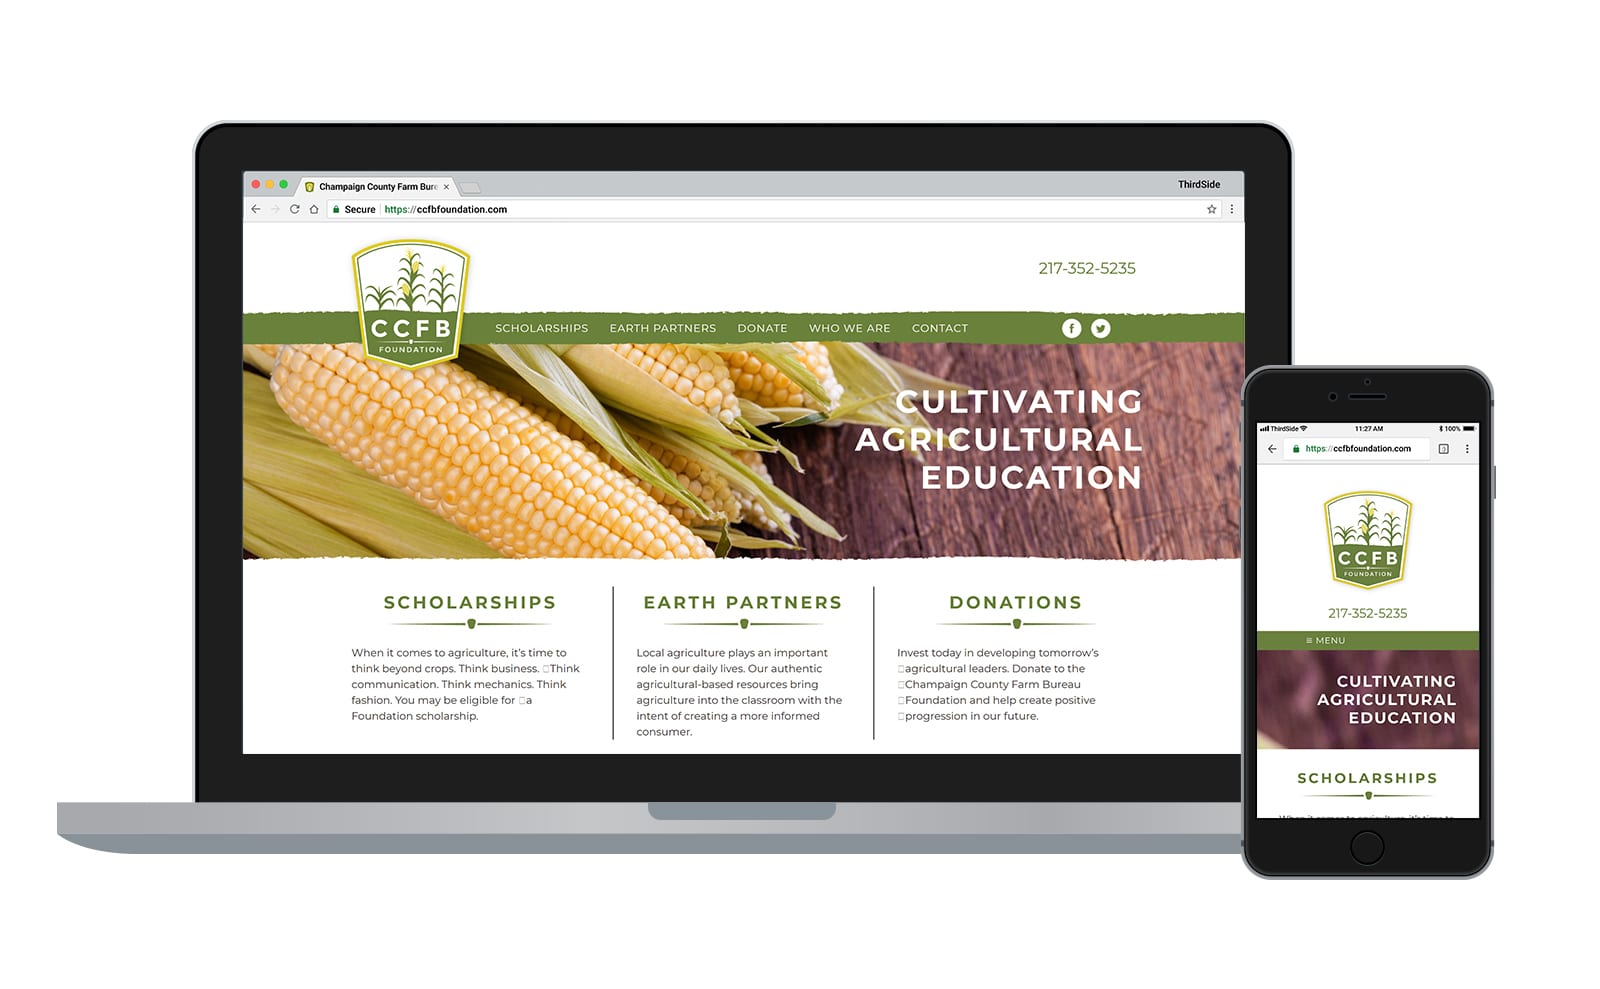 website for the Champaign County Farm Bureau Foundation